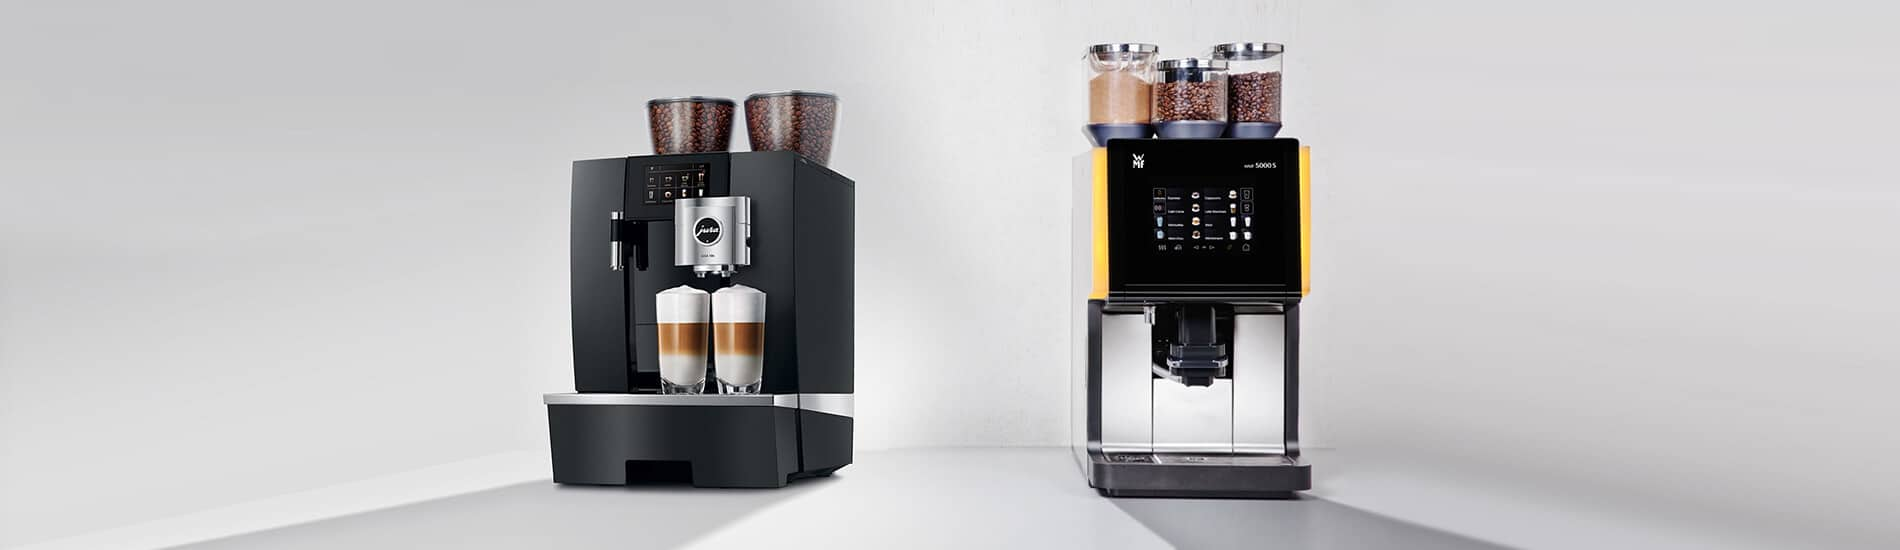 Coffee Machine Comparison: WMF 5000s vs Jura Giga X8